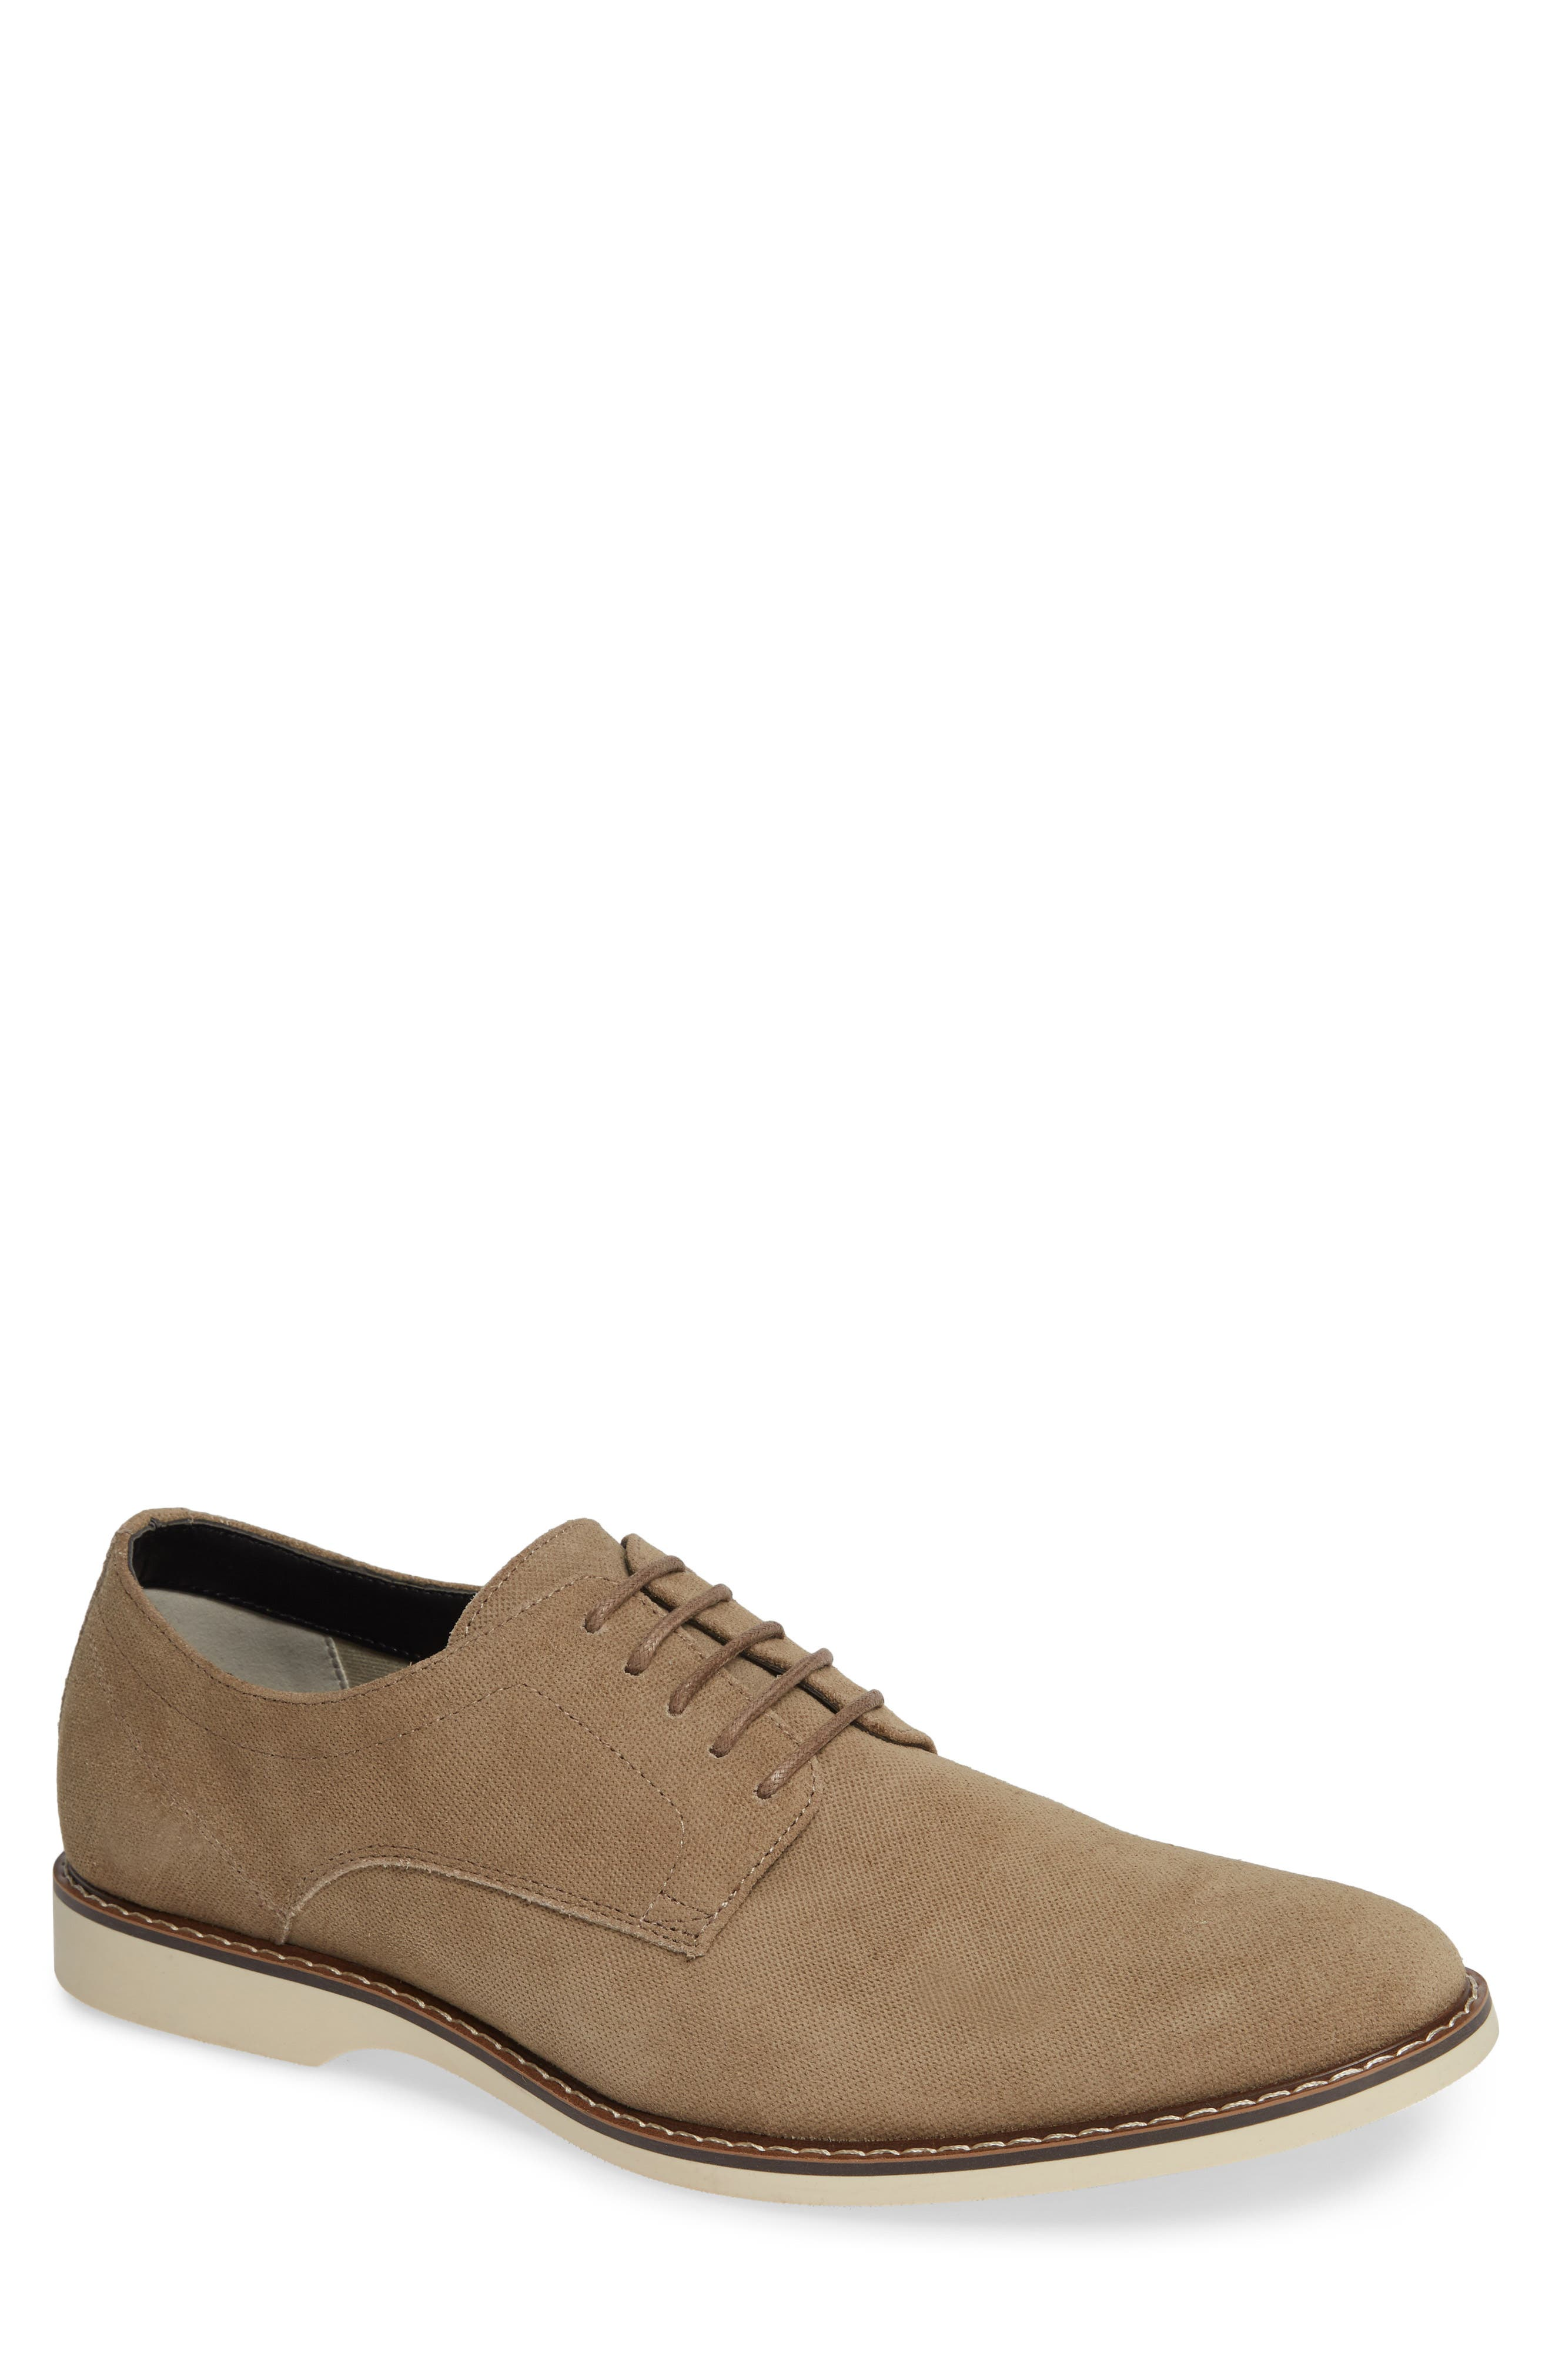 Georgetown Textured Derby,                             Main thumbnail 1, color,                             KHAKI SUEDE